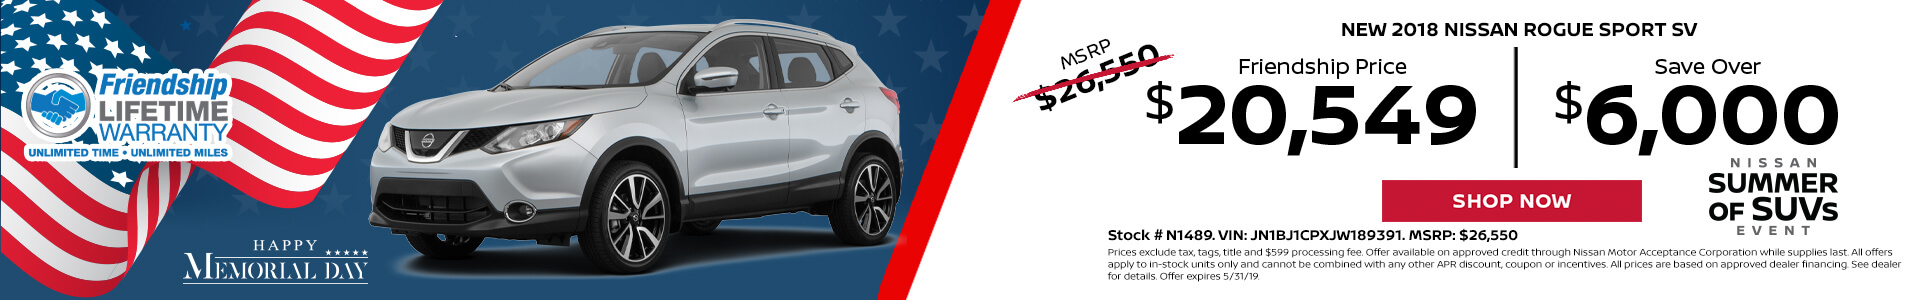 Nissan Rogue Sport $20,549 Purchase